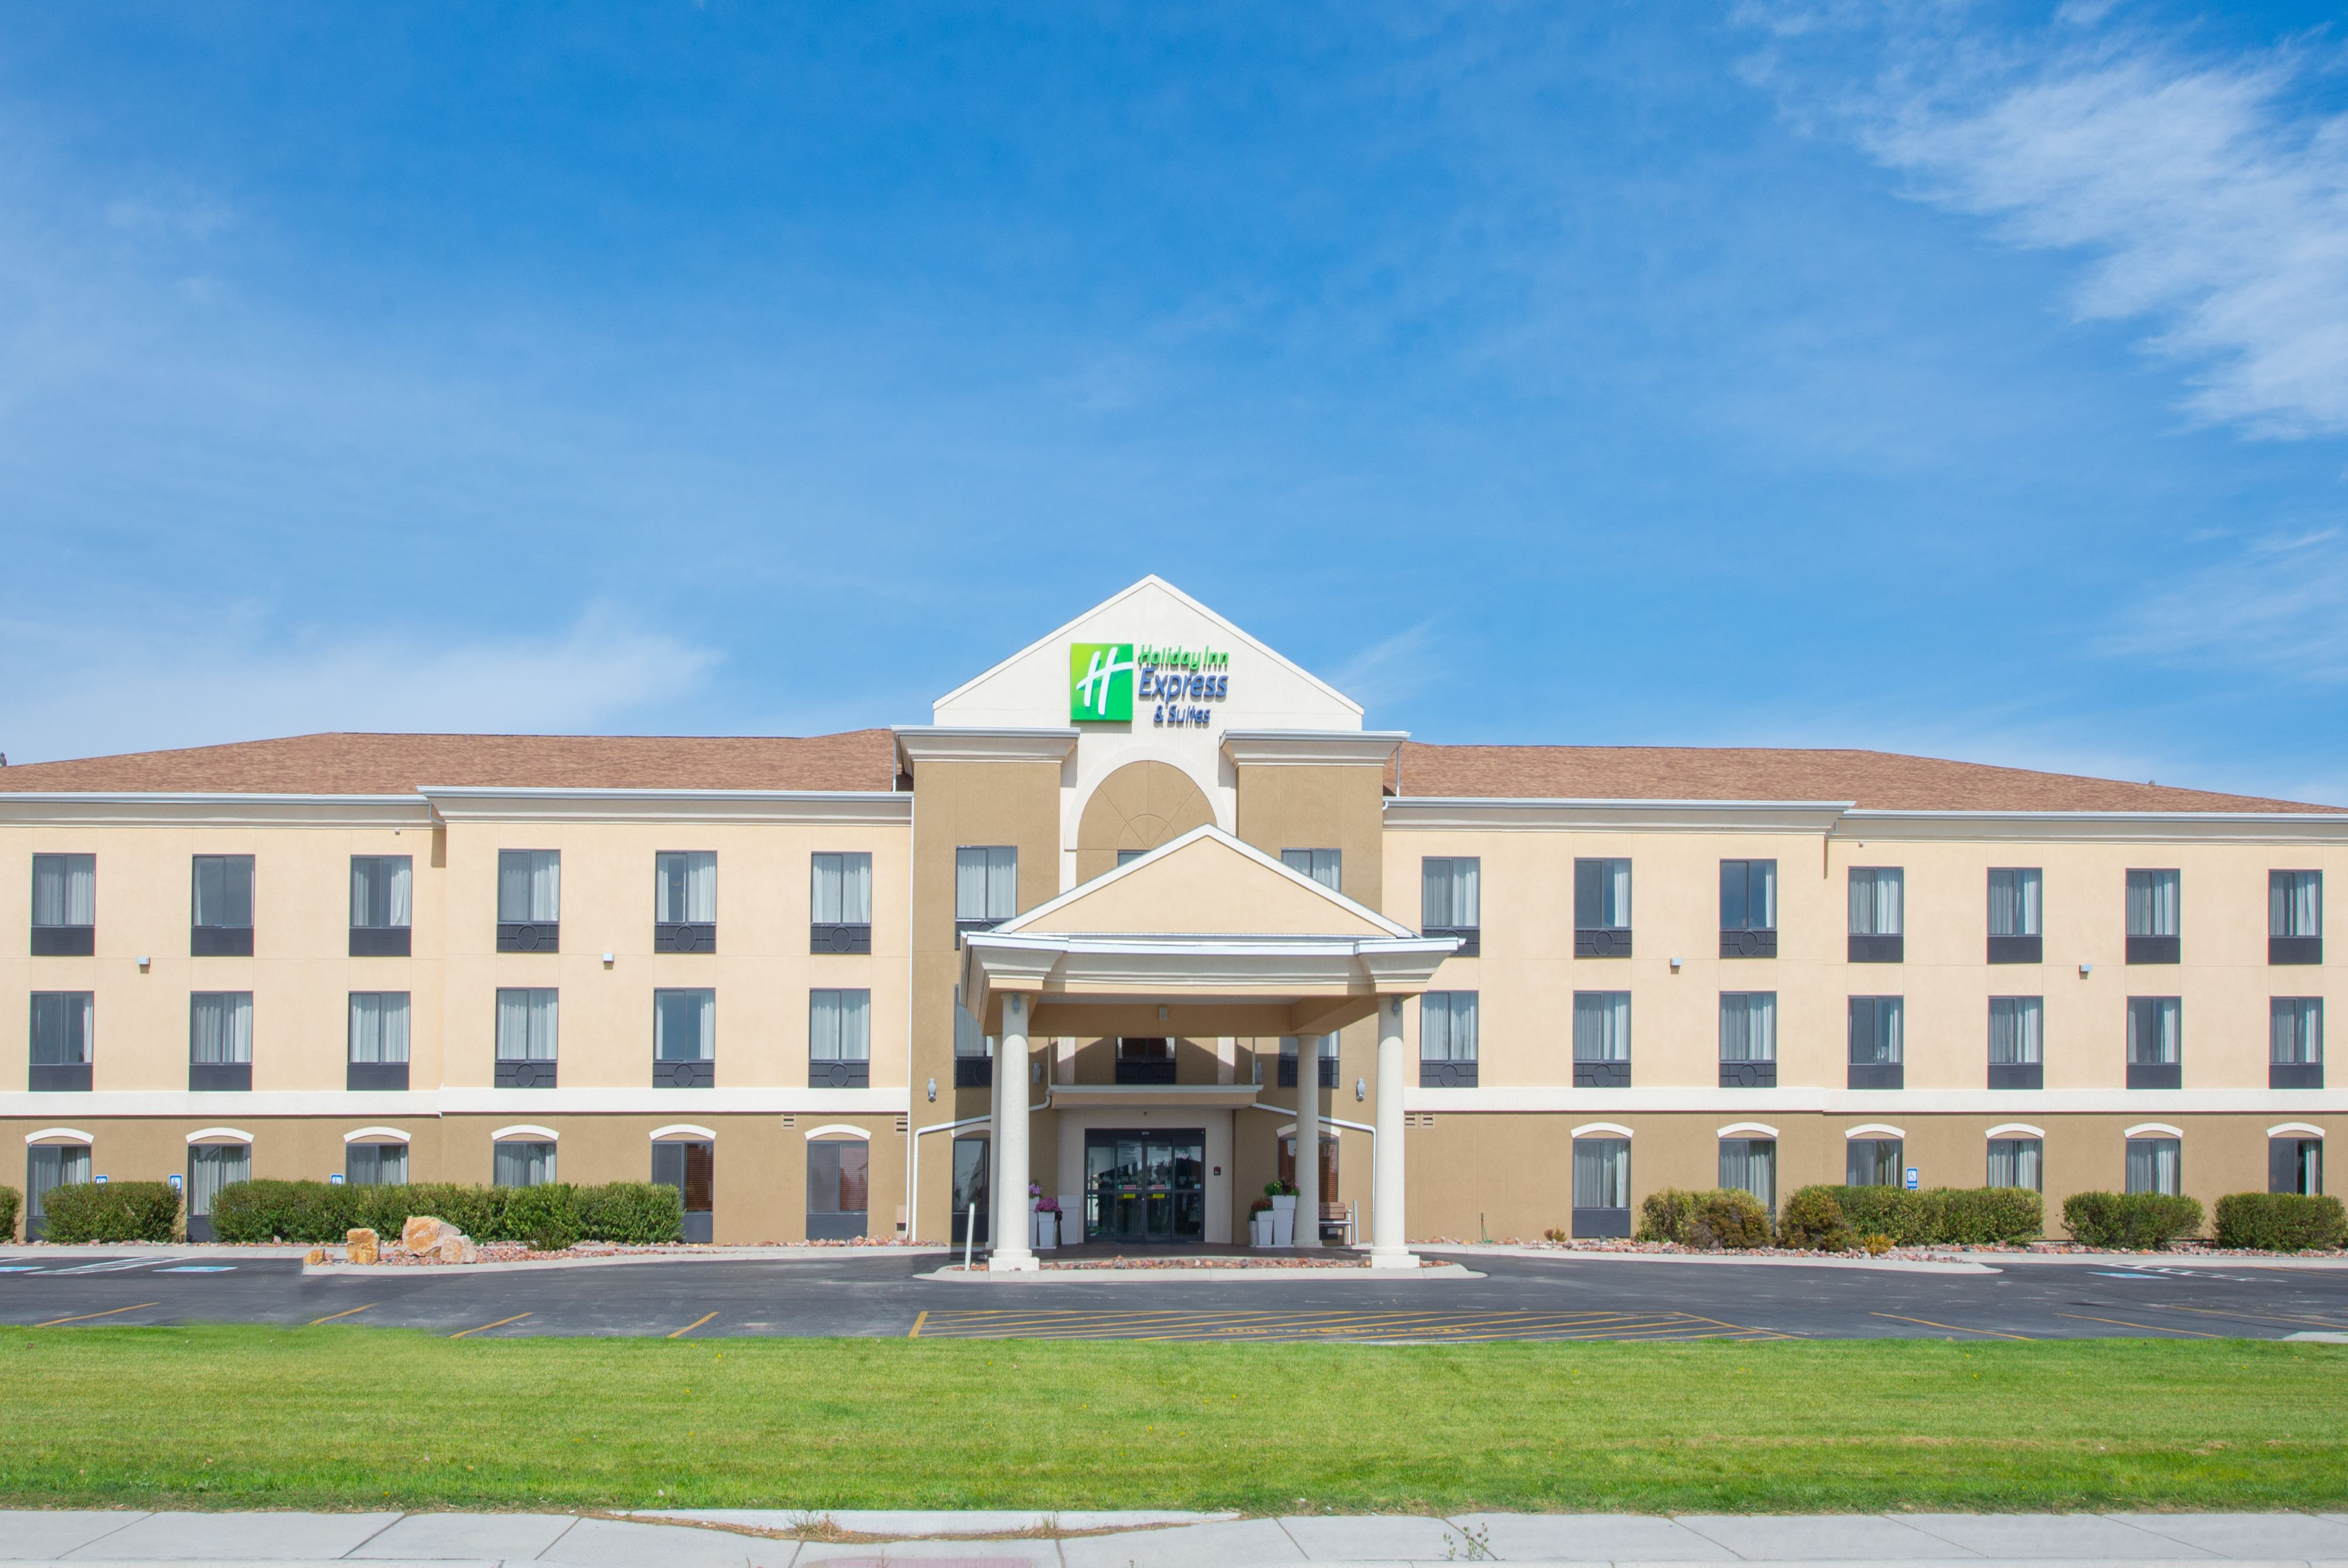 Furniture Stores Dothan Al Holiday Inn Express & Suites Dothan North in Dothan, AL ...